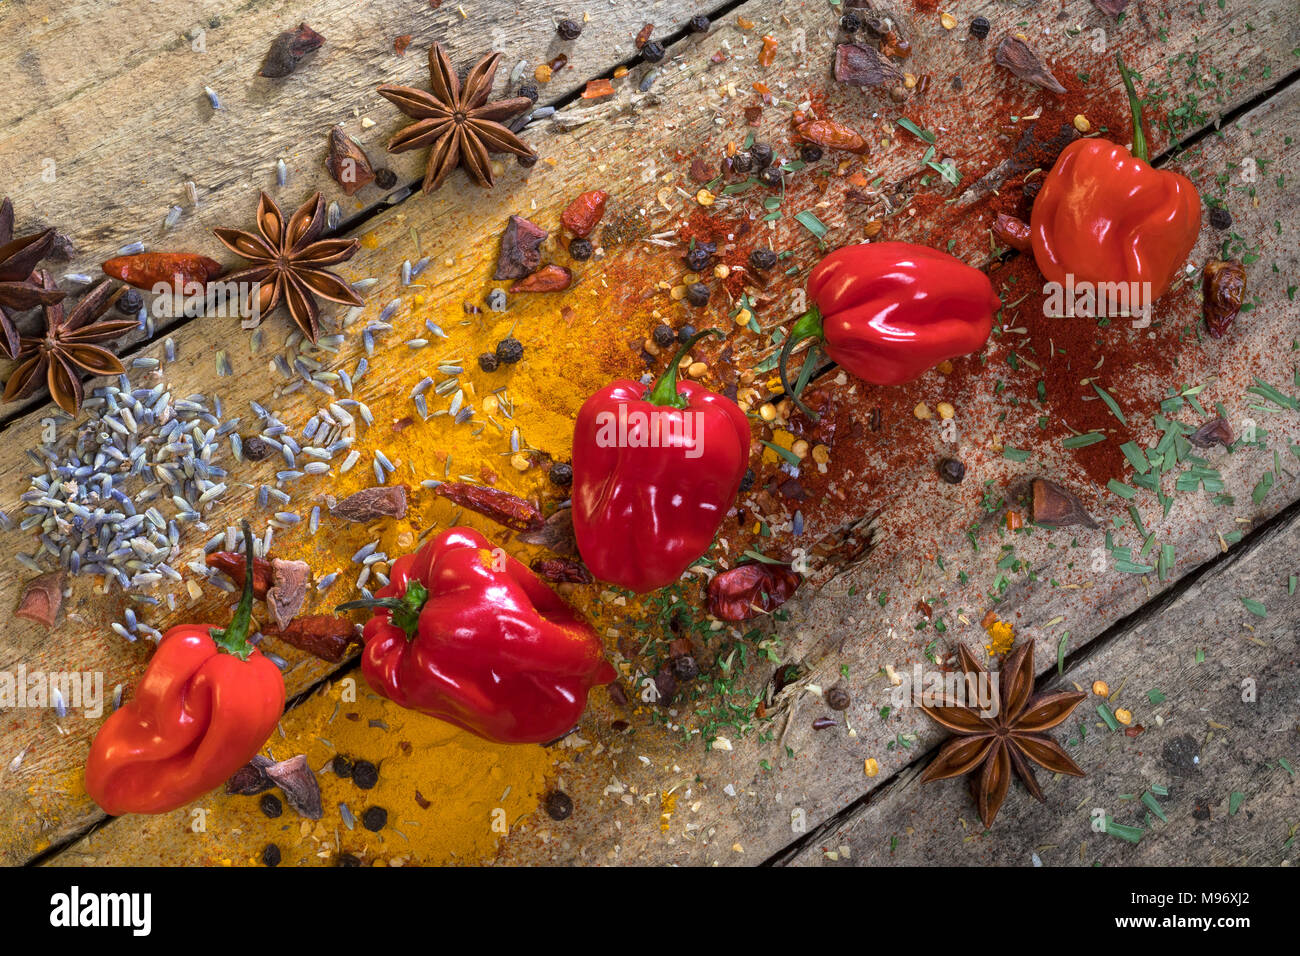 Hot chili peppers on a rustic farmhouse table. Used to add a hot spicy flavor to cooking. - Stock Image